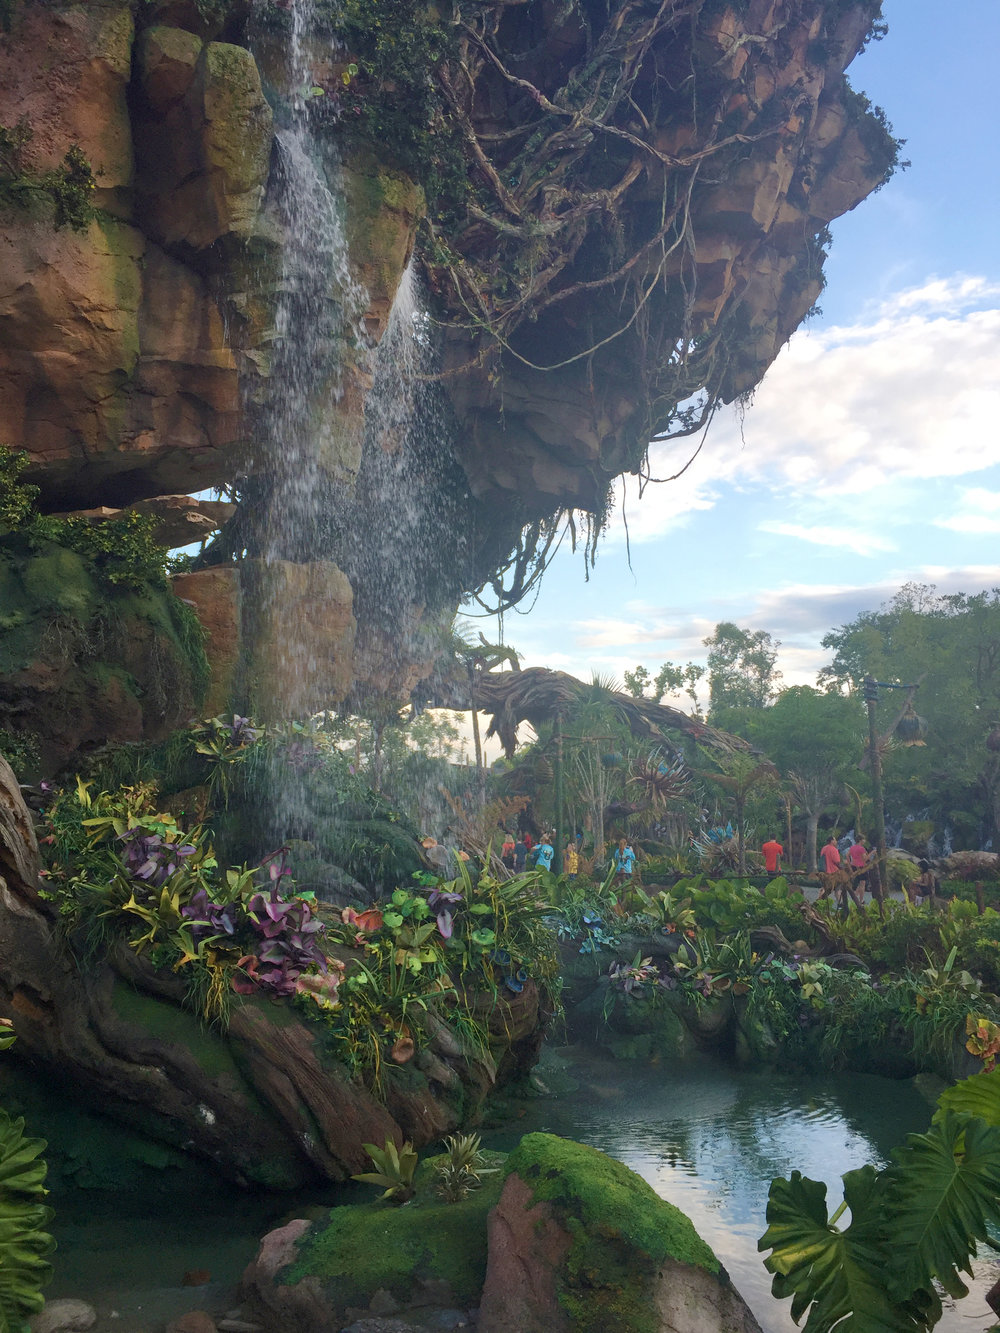 The Fastpass line for Flight of Passage bypasses a lot of the indoor queue, but you'll still get to see the beautiful landscape features, like this awesome waterfall!